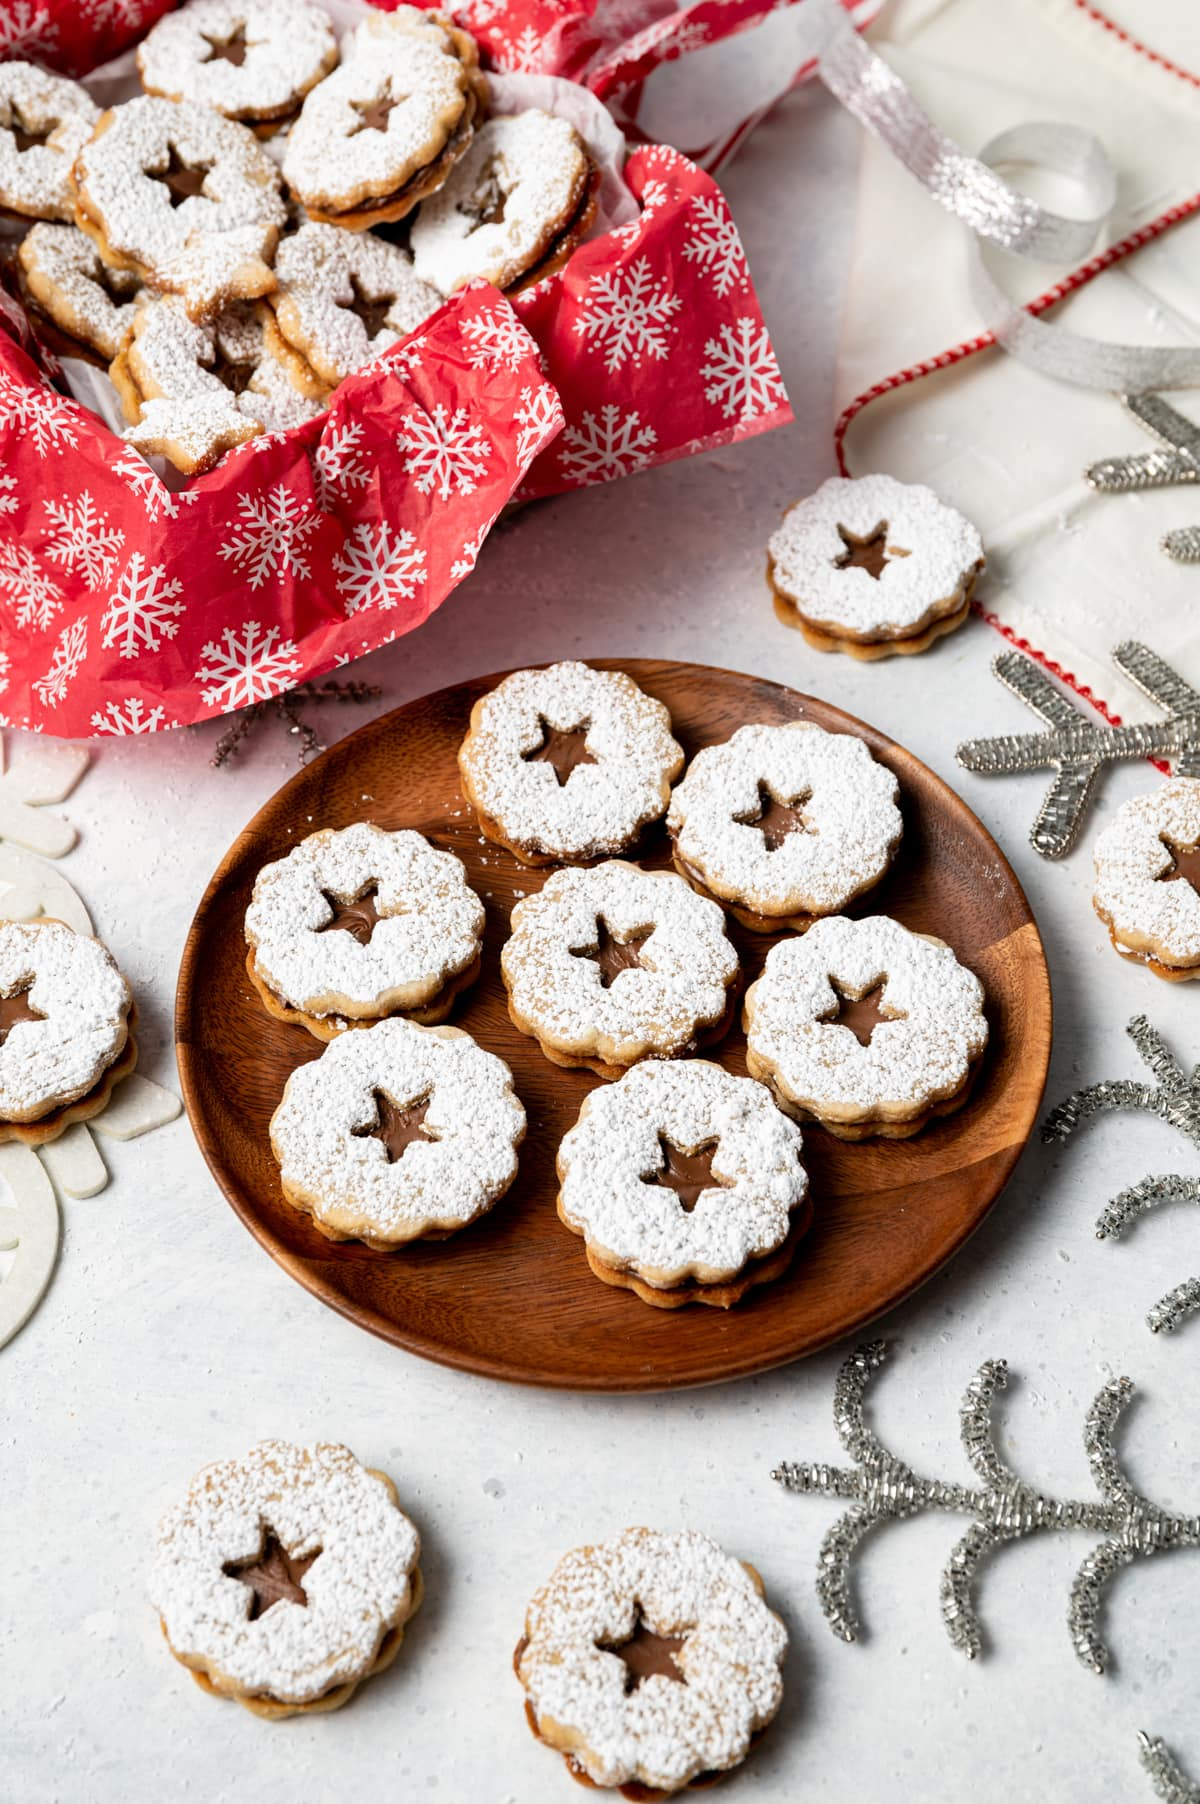 chocolate filled sandwich cookies on a wood plate and chocolate filled sandwich cookies in a box with red and white snowflake paper